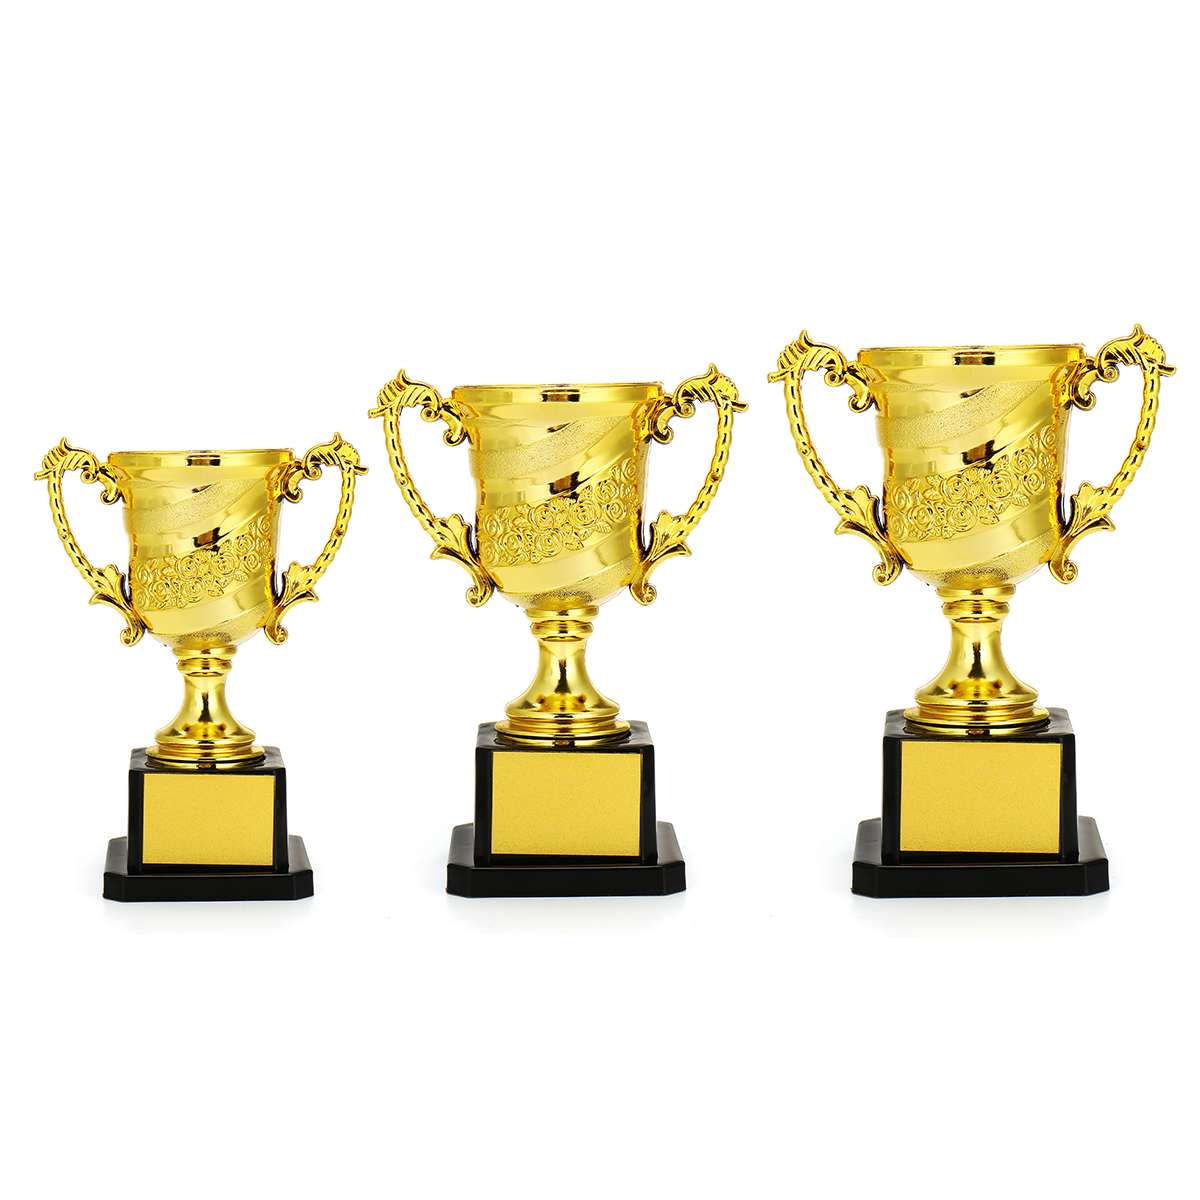 Golden Microphone Trophies Customized Awards for Singers,Collections Tournaments,Party Celebrations Award Ceremony Desk Decor Gifts 11 Resin